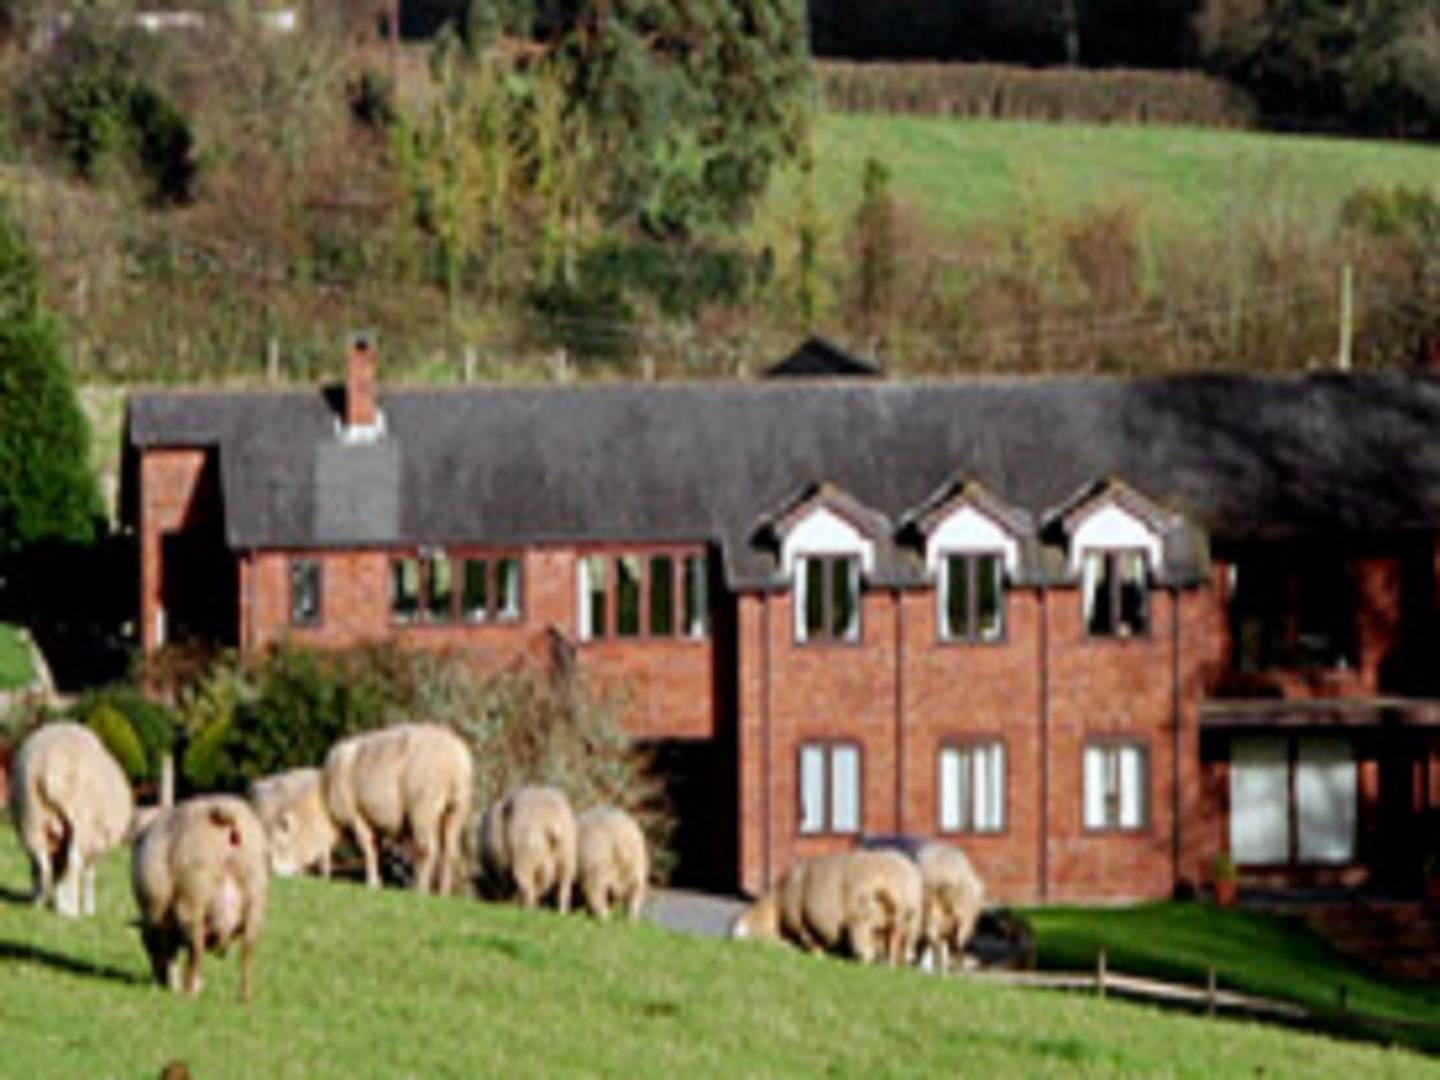 A herd of sheep standing on top of a building at Lower Thornton Farm.